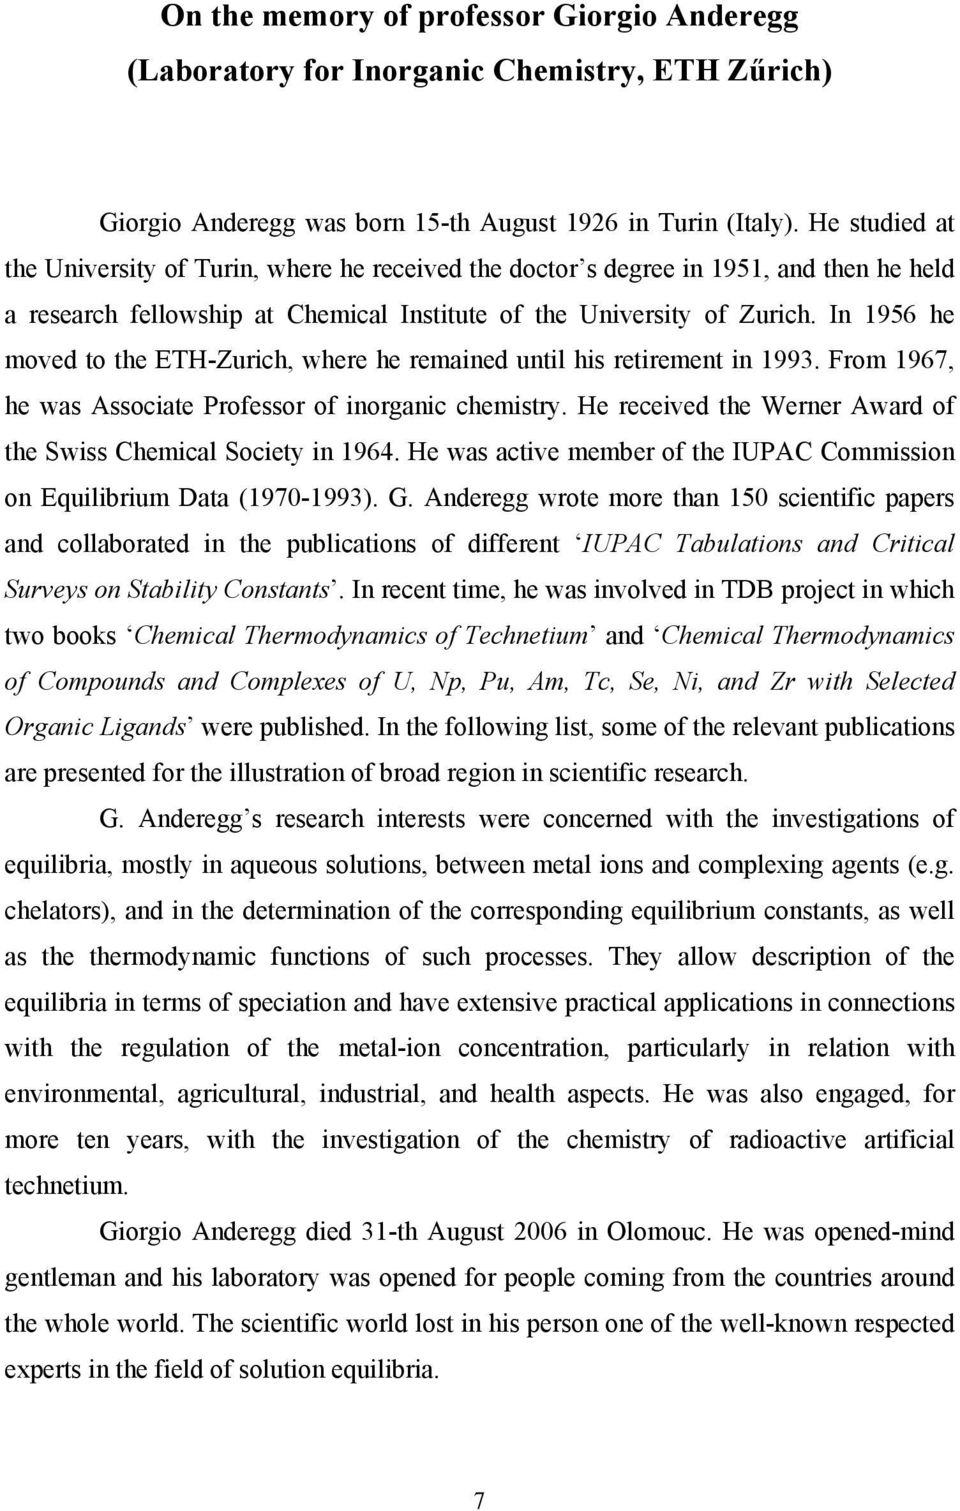 In 1956 he moved to the ETH-Zurich, where he remained until his retirement in 1993. From 1967, he was Associate Professor of inorganic chemistry.